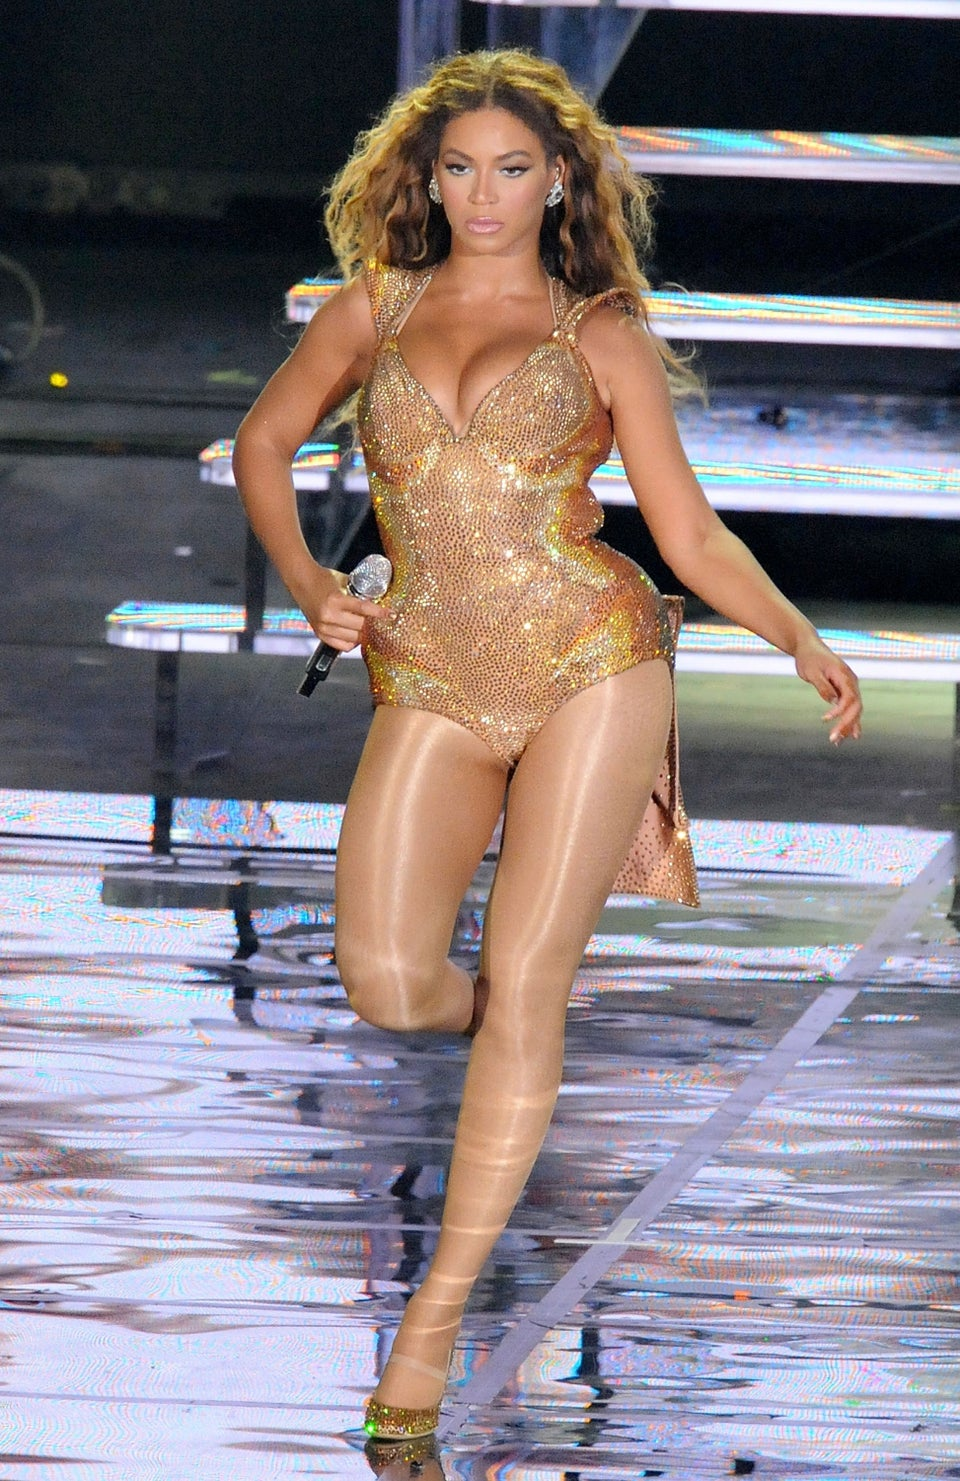 10 Reasons We Want To Be at Beyoncé's Comeback Concert